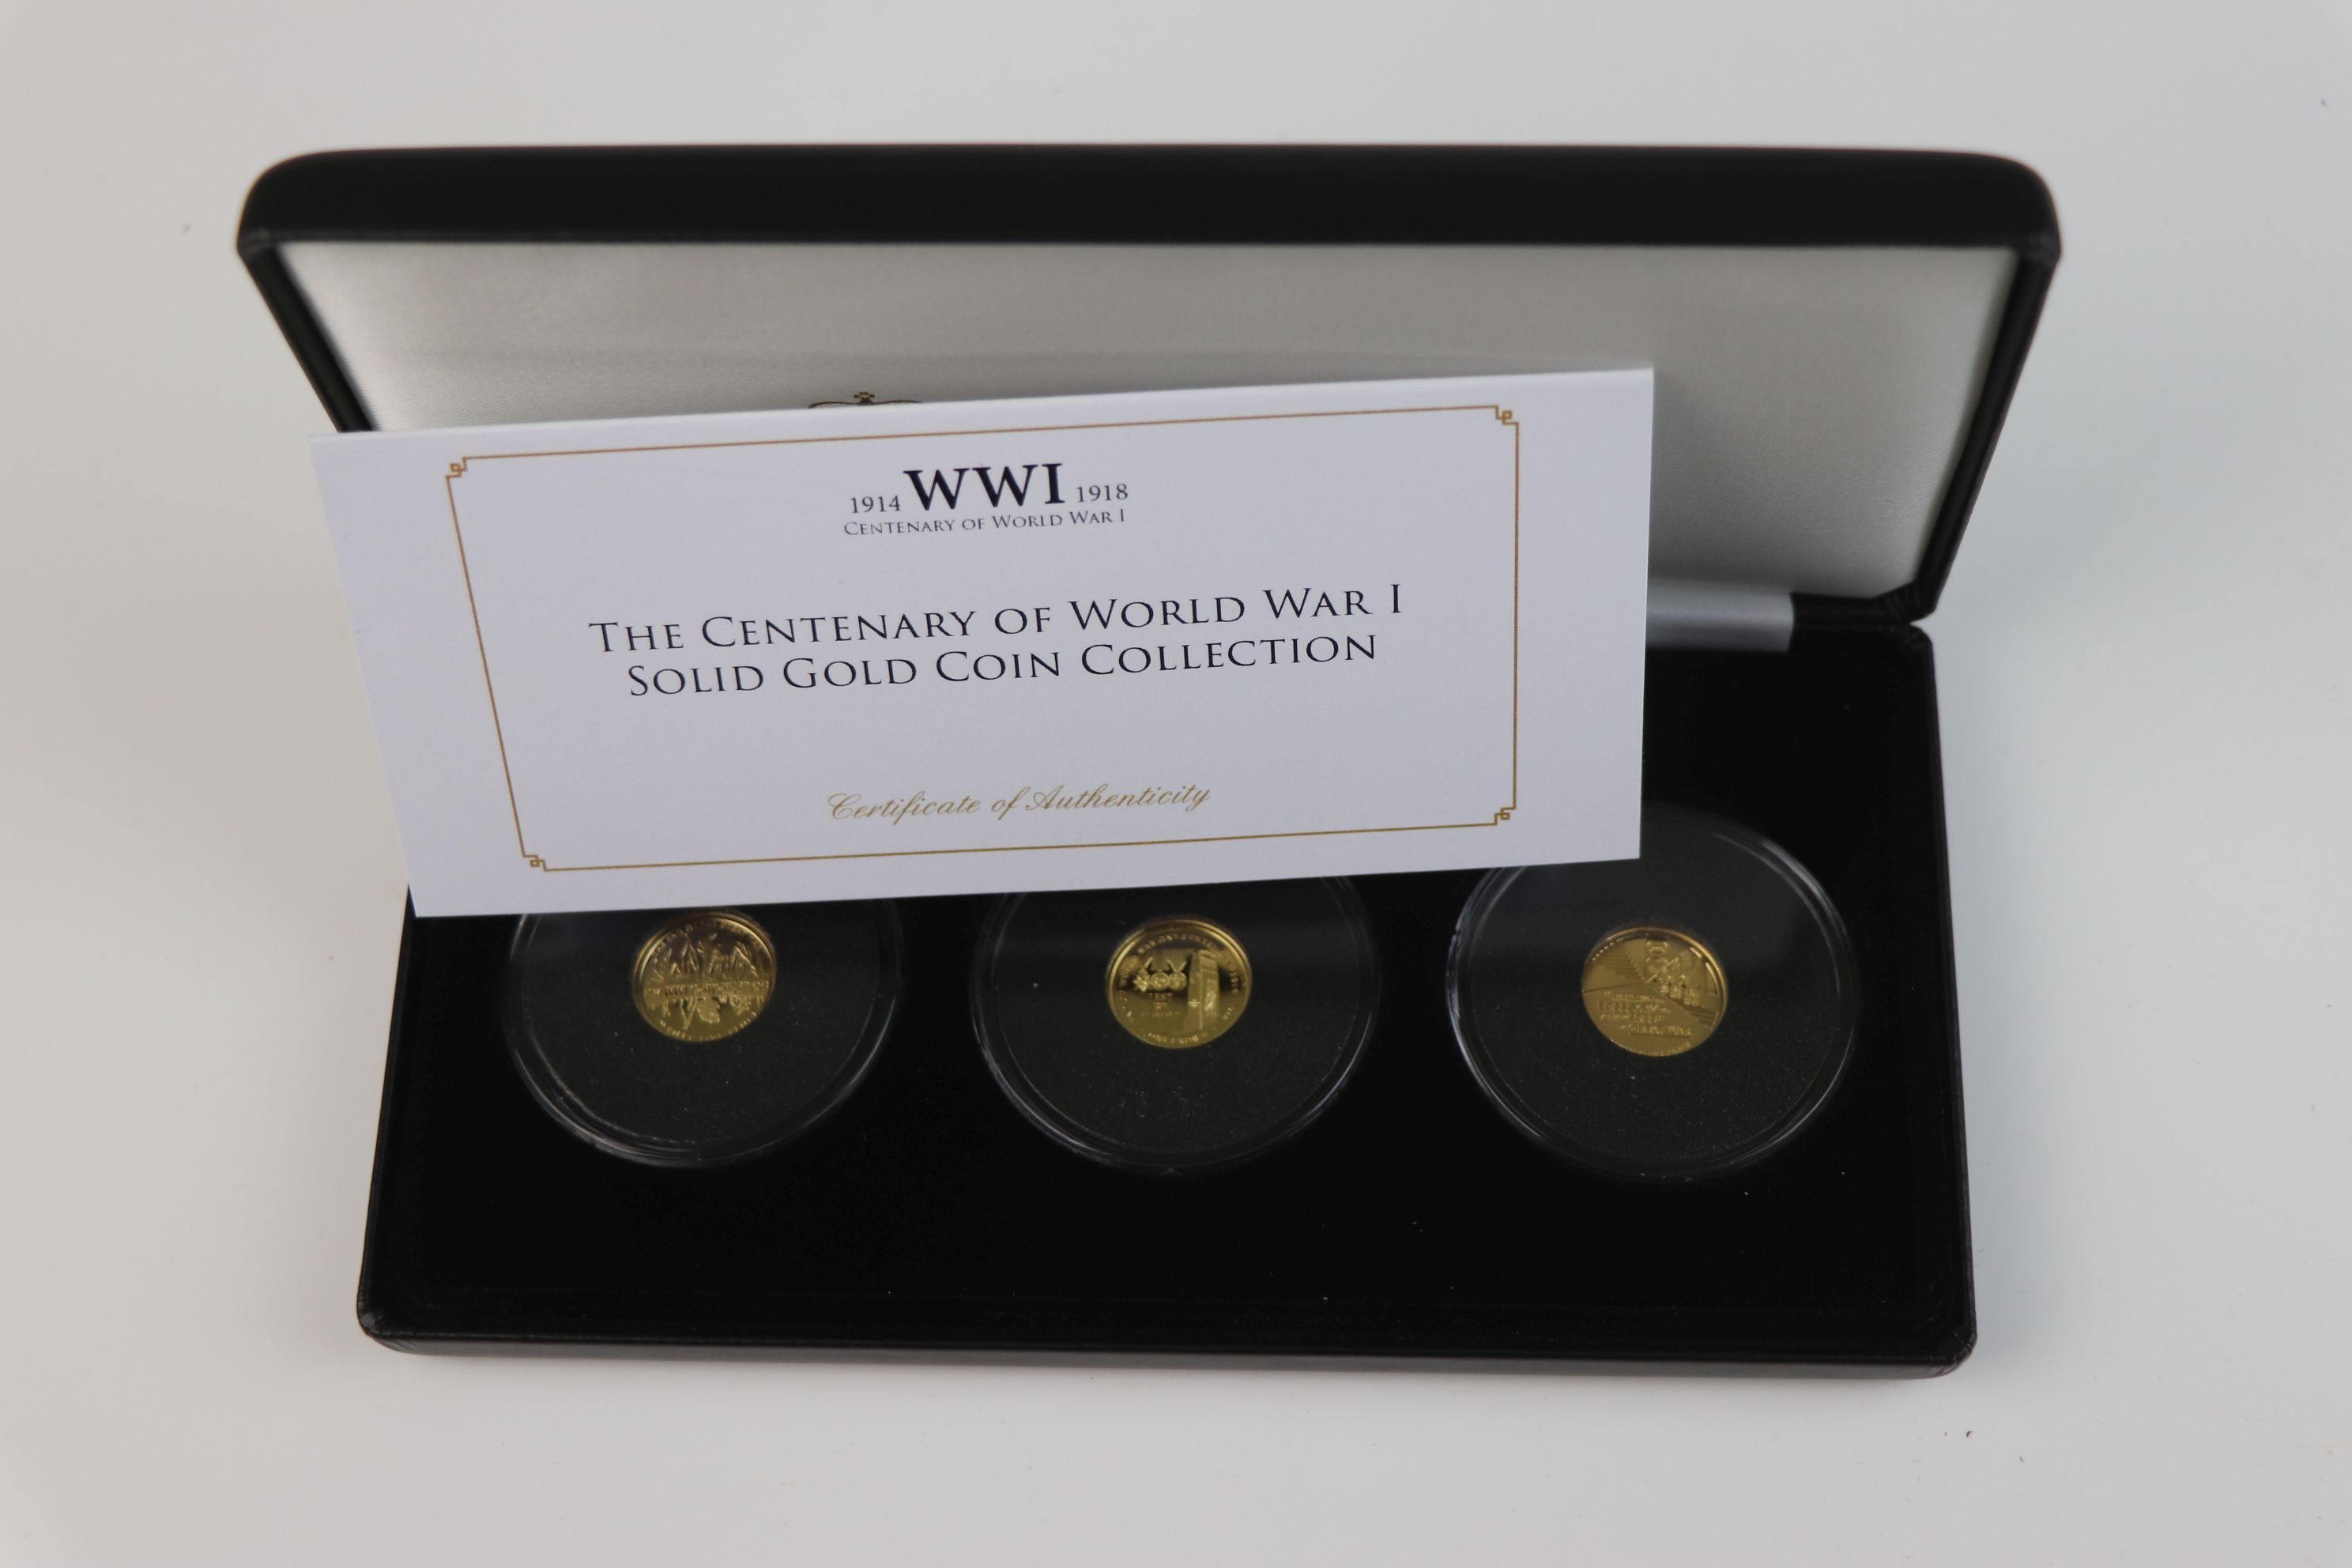 A cased Jubilee Mint limited edition The Centenary of World War One 9ct gold three coin set, - Image 7 of 7